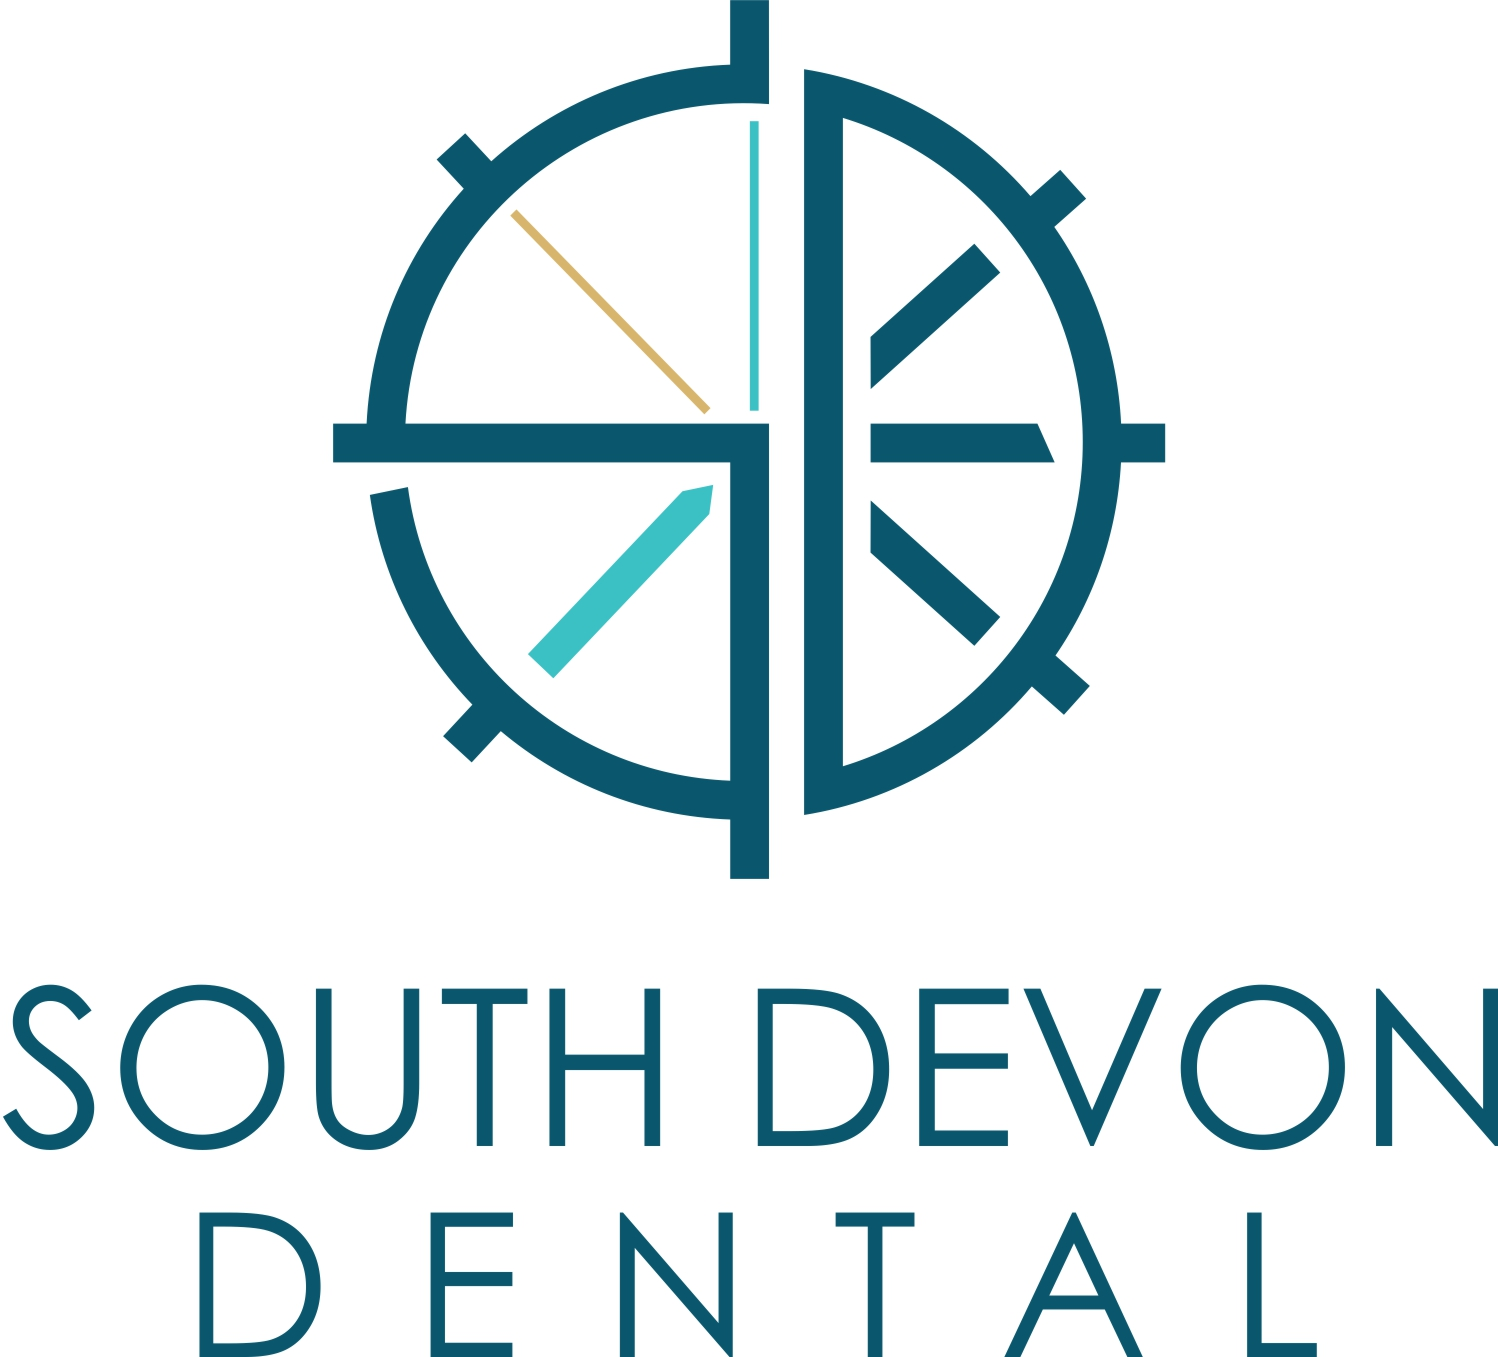 South Devon Dental